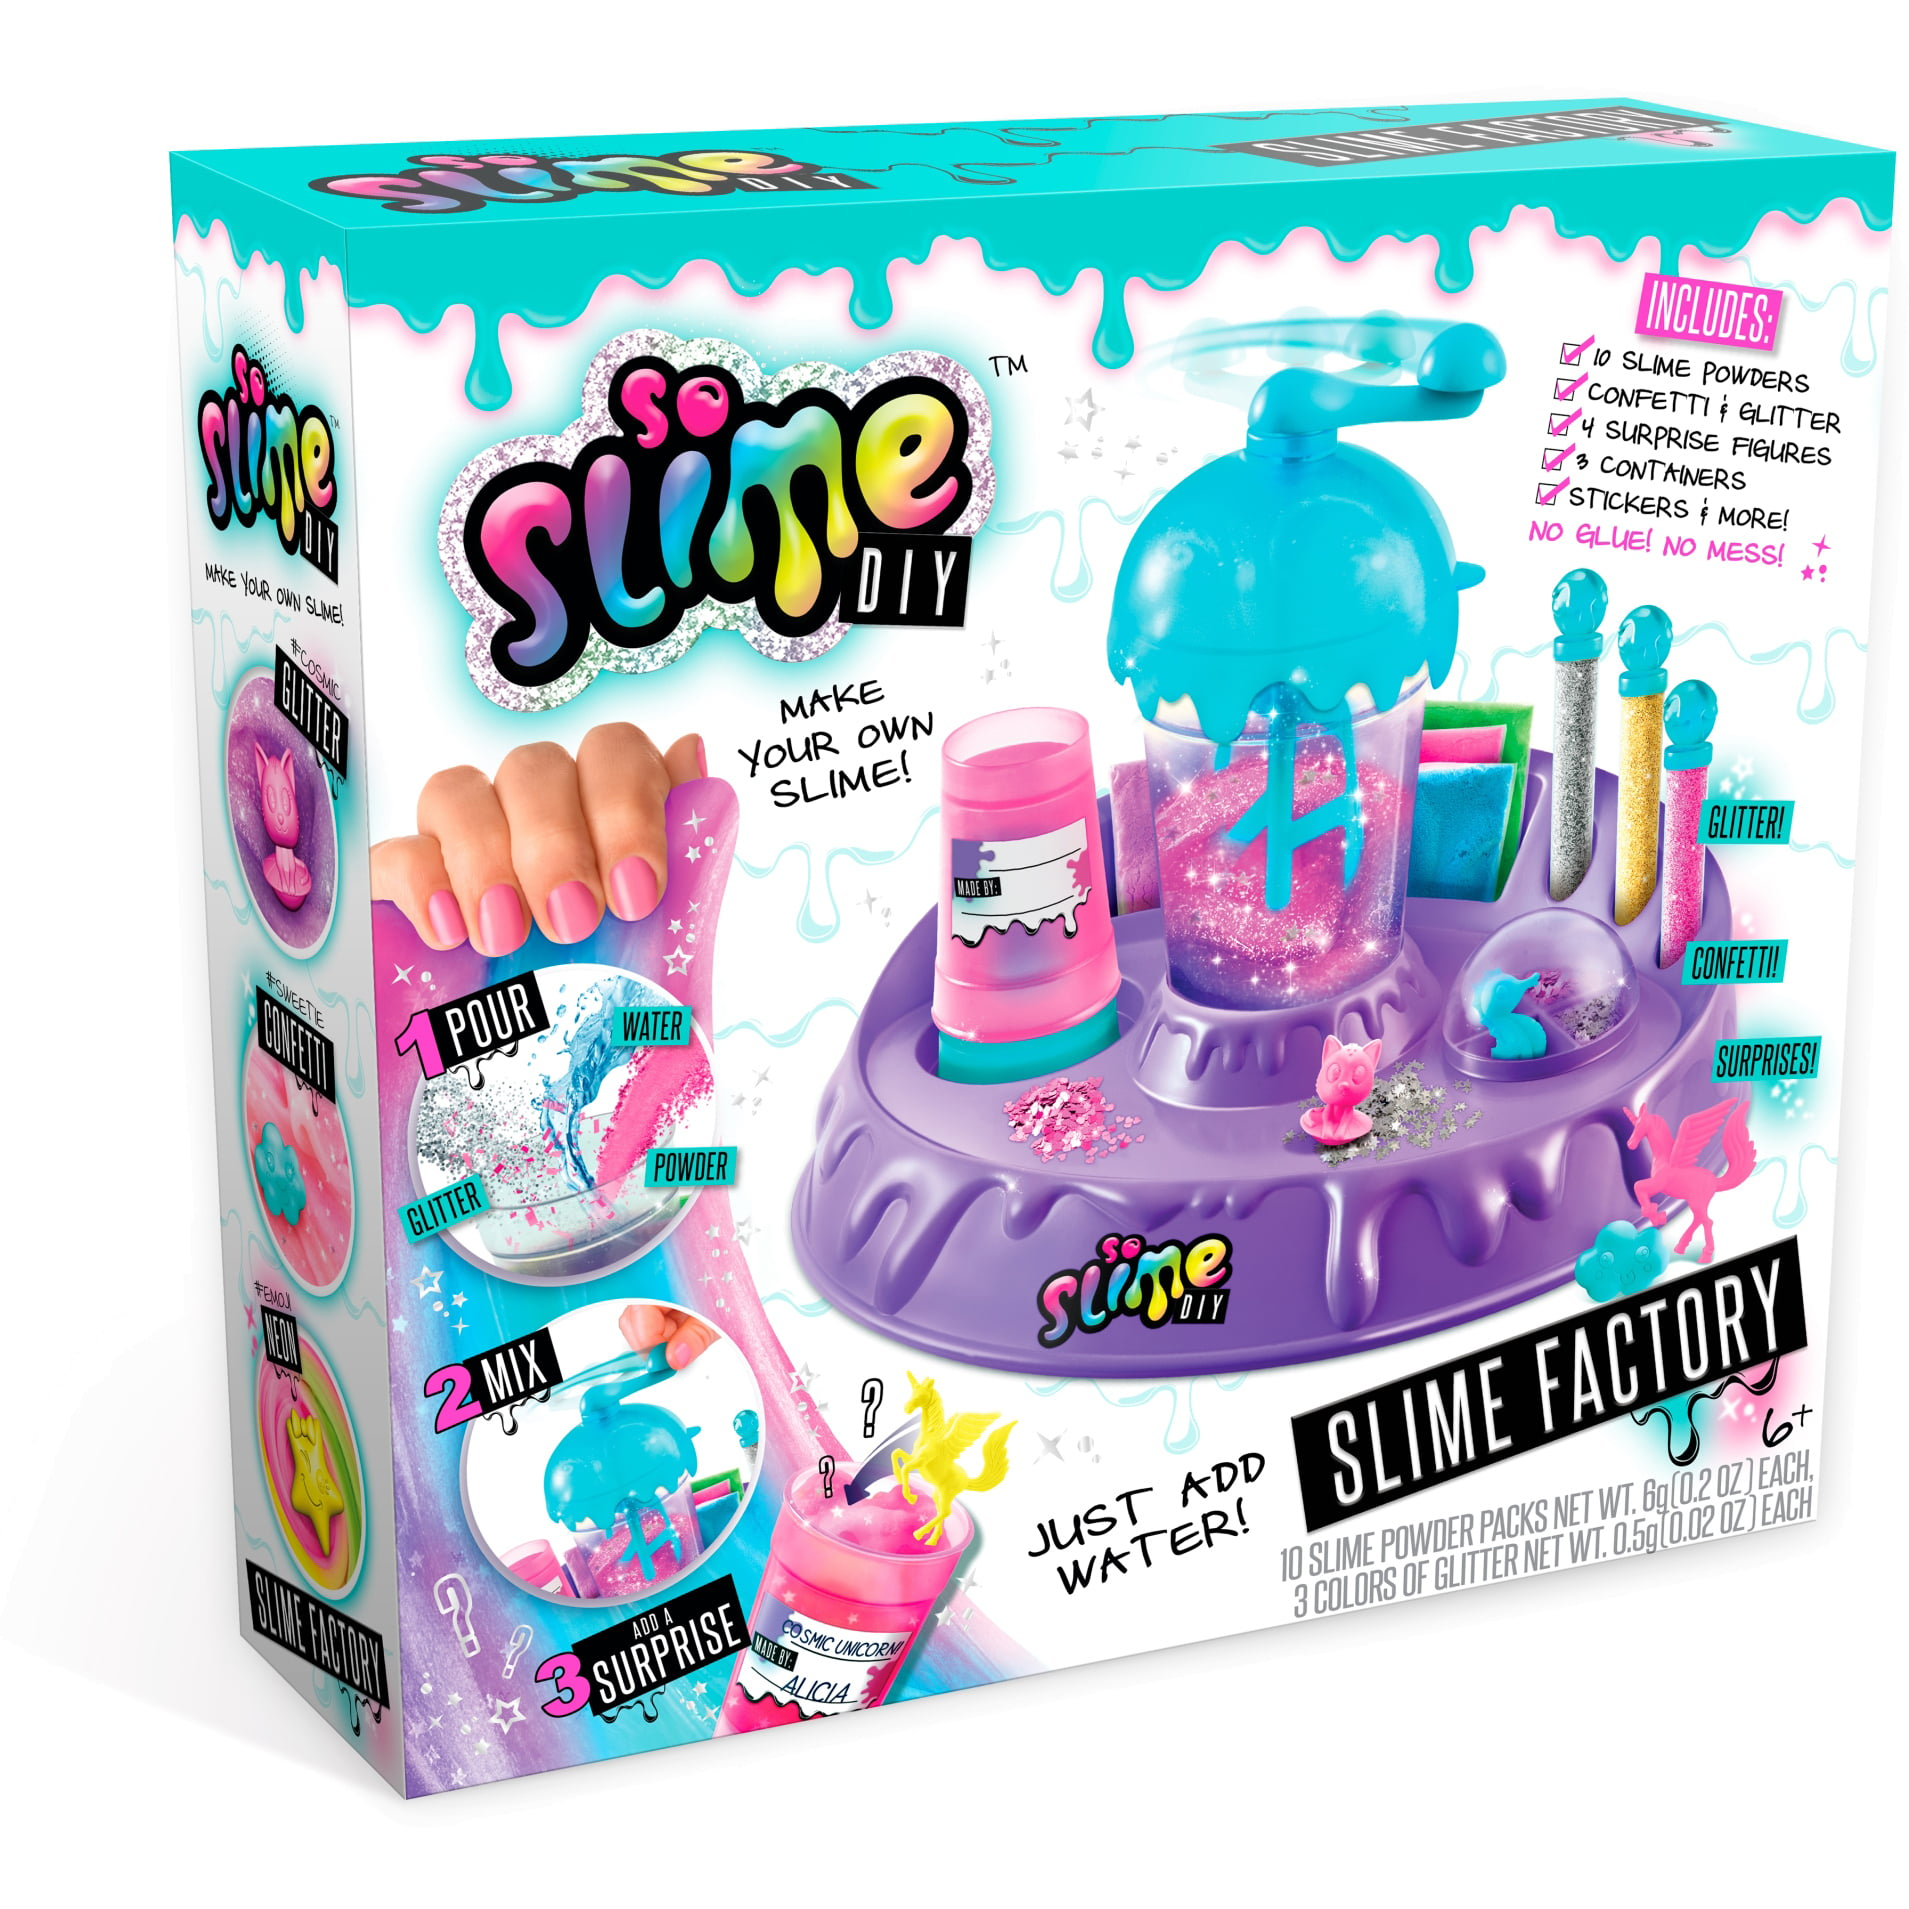 d2b7494ab5117 The SoSlime DIY Collection: Create The Best Slime! - Walmart.com